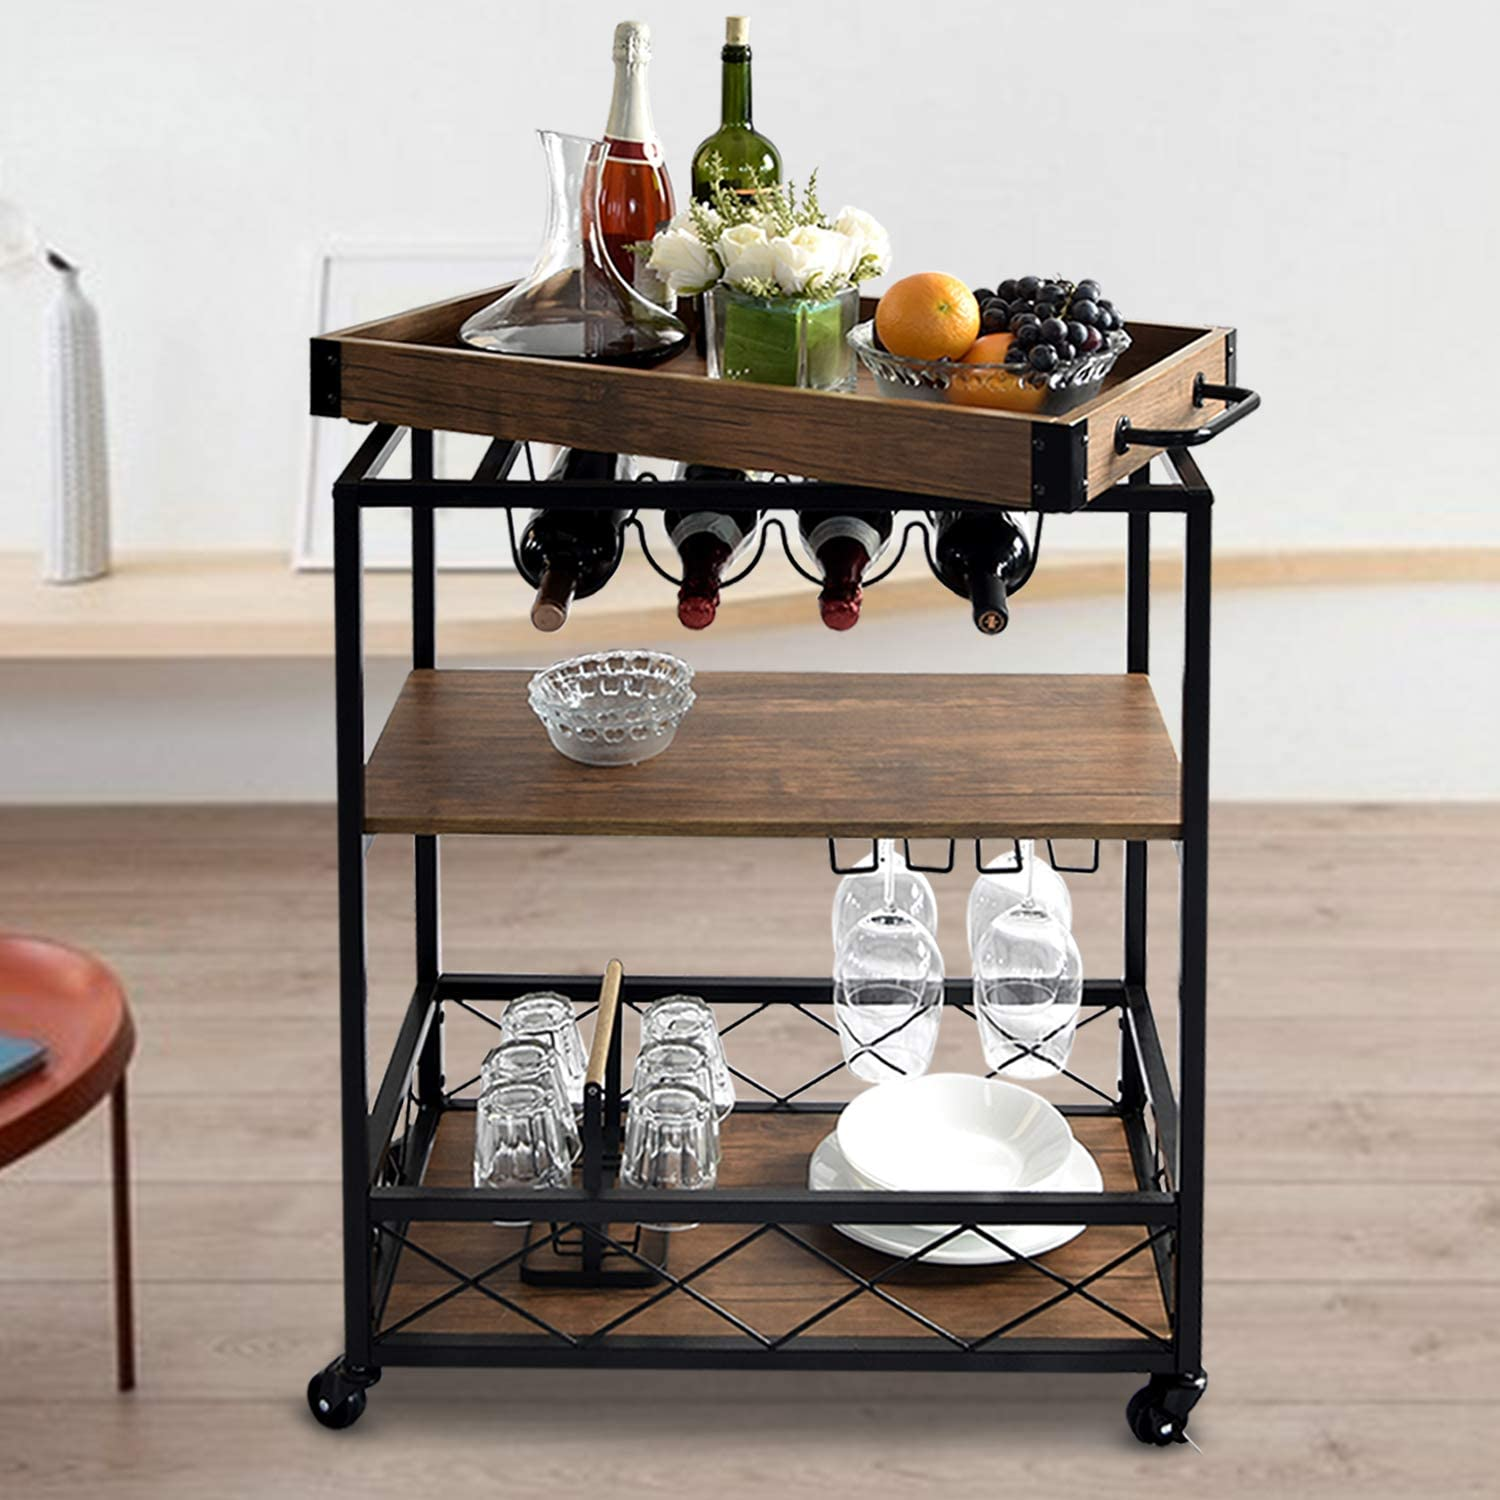 NSdirect Home Bar Cart,Rustic Bar Cabinet Kitchen Island&Serving Cart Rolling Storage Cart with 3-Tier Shelves,Metal Wine Rack Storage and Glass Bottle Holder,Removable Wood Top Box Container(Brown)